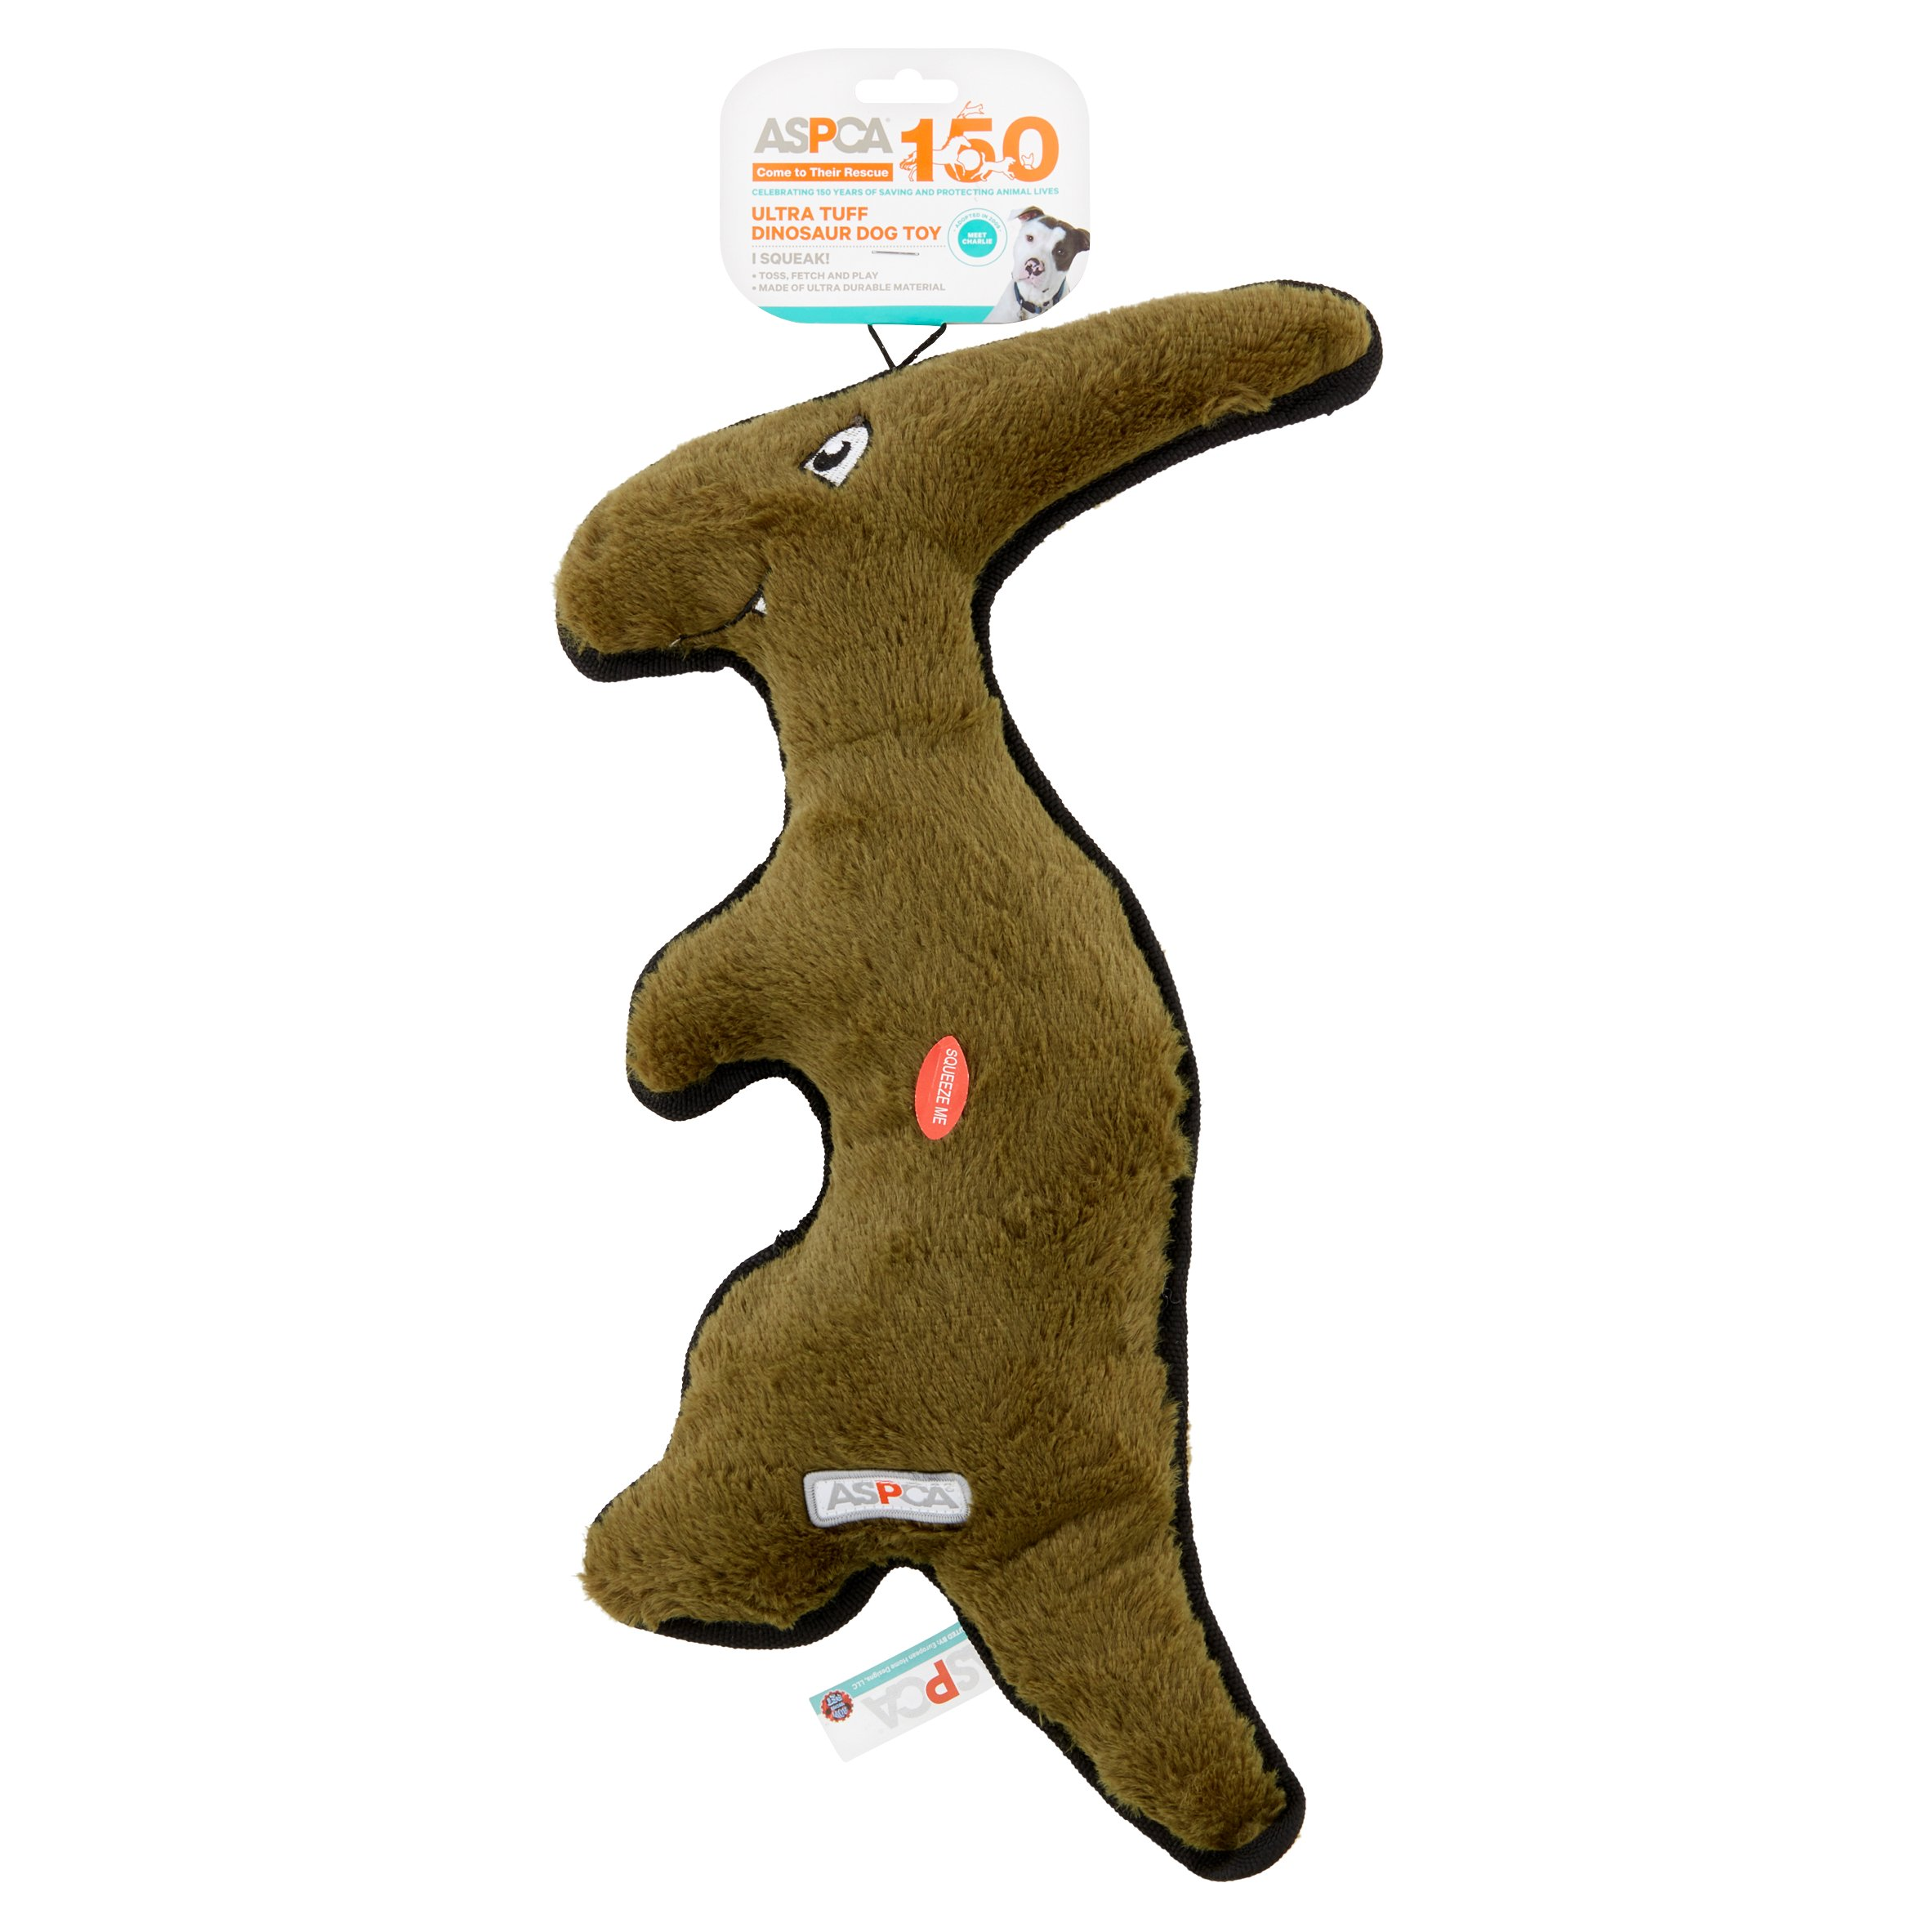 ASPCA Gray Ultra Tuff Dinosaur Dog Toy